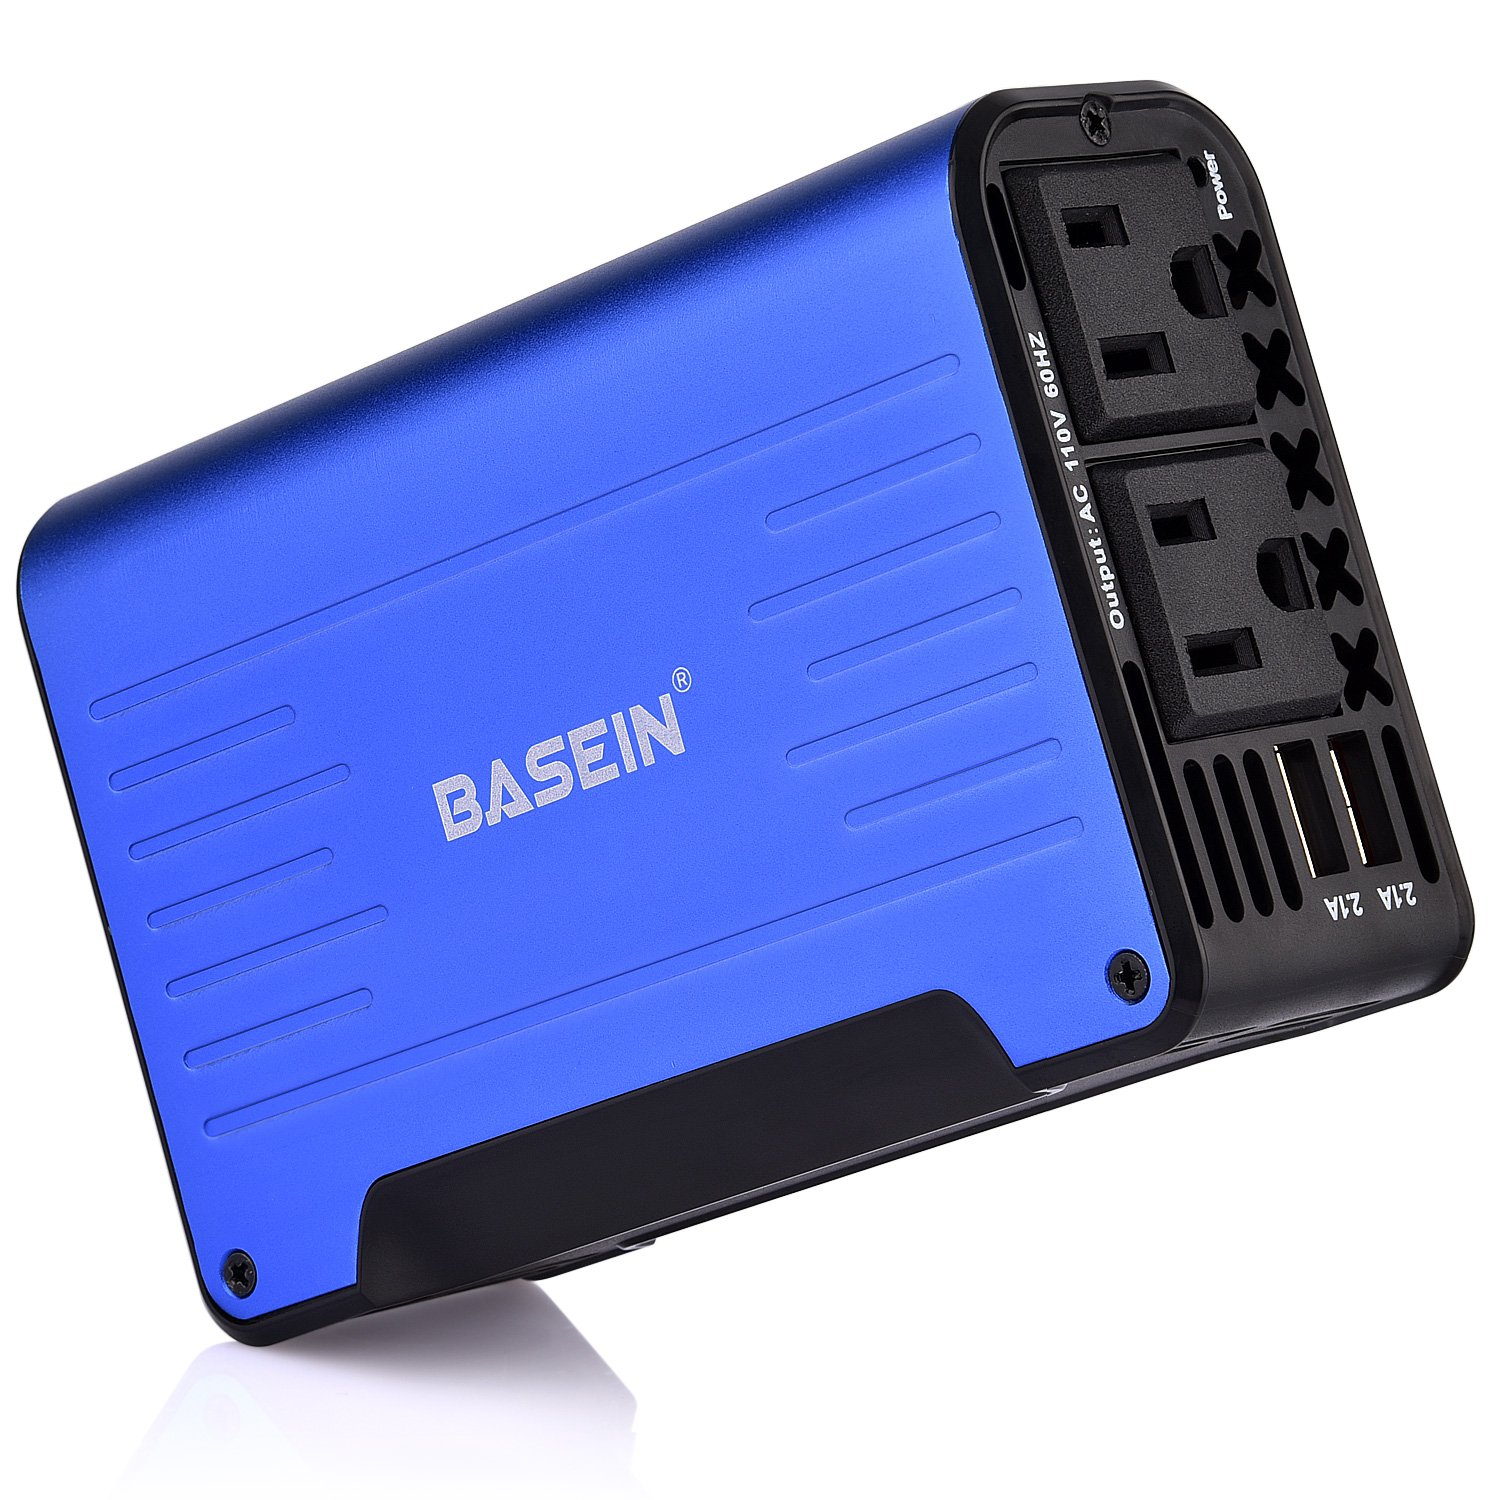 BASEIN 300W Car Power Inverter 12V DC to 110V AC Adapter with 4.2A Dual USB Car Inverter USB Charger, Newest Design Power inverter- Blue